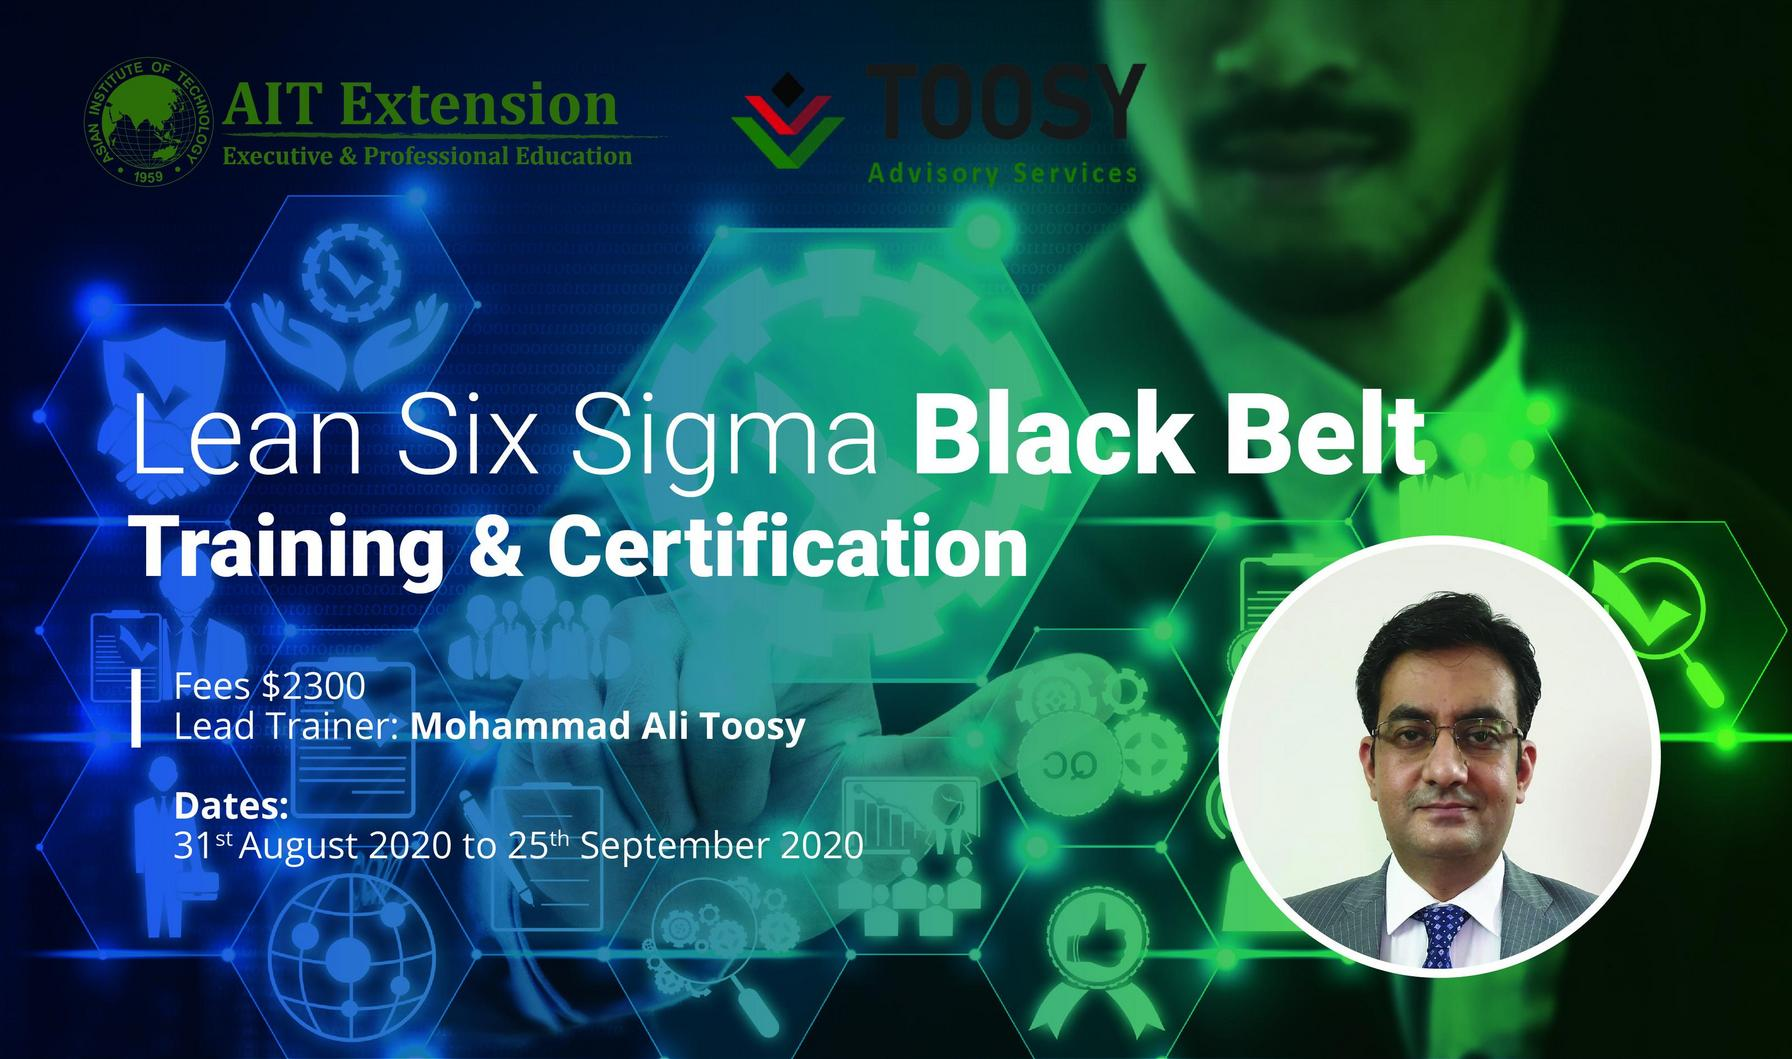 1-Six Sigma Black Belt _Banner_31 Aug - 25 Sep 2020